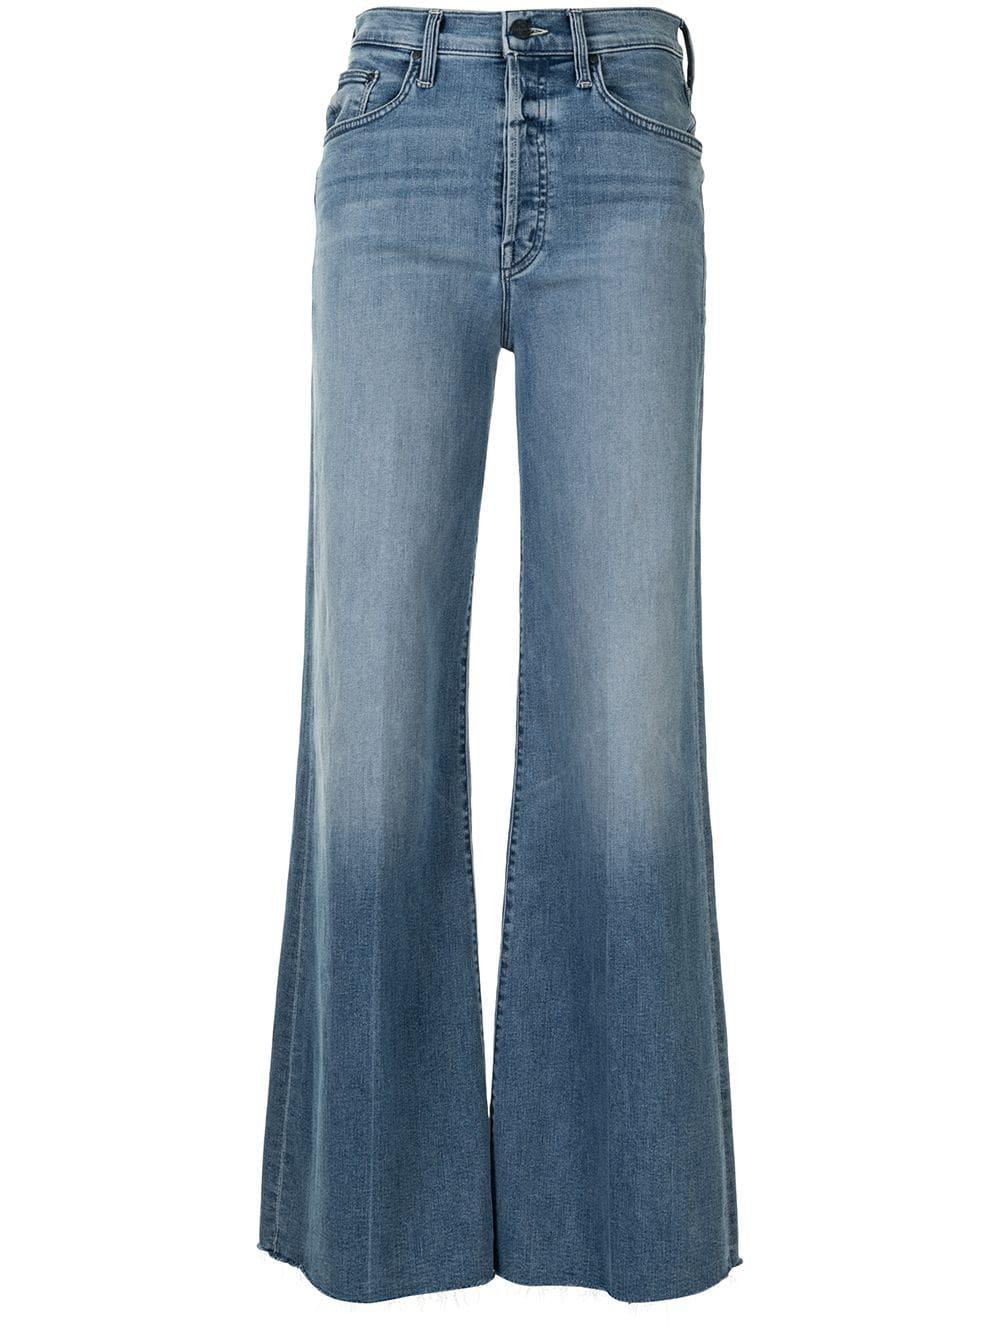 The Tomcat Wide Leg Jean